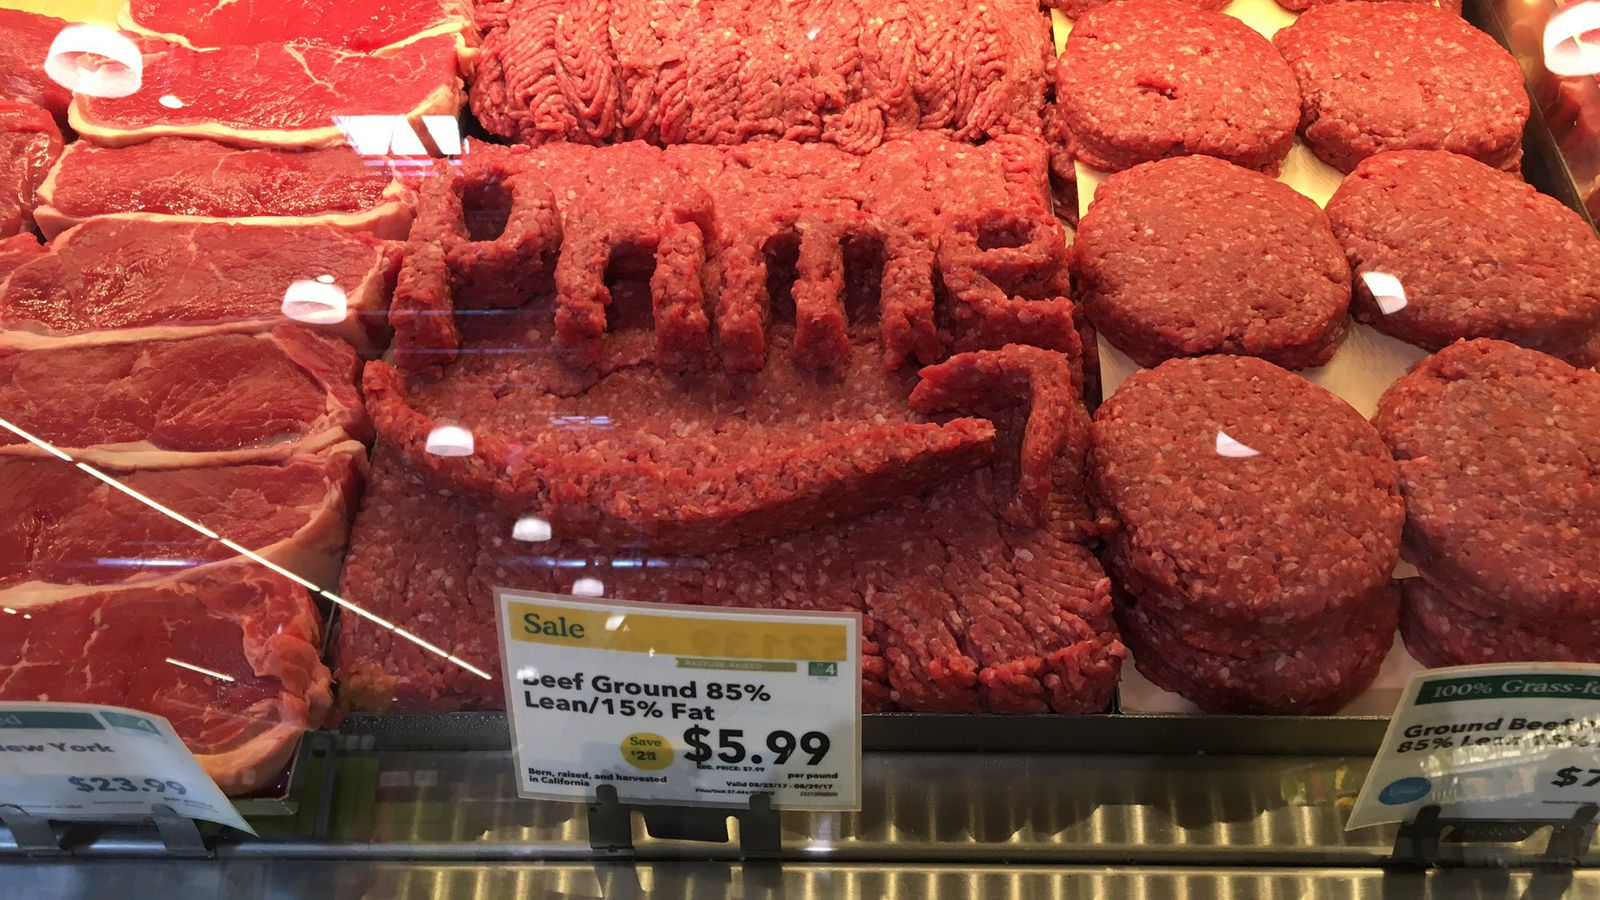 Whole Cow Meat Whole Foods Staff Designed Those Meat Logos On Their Own